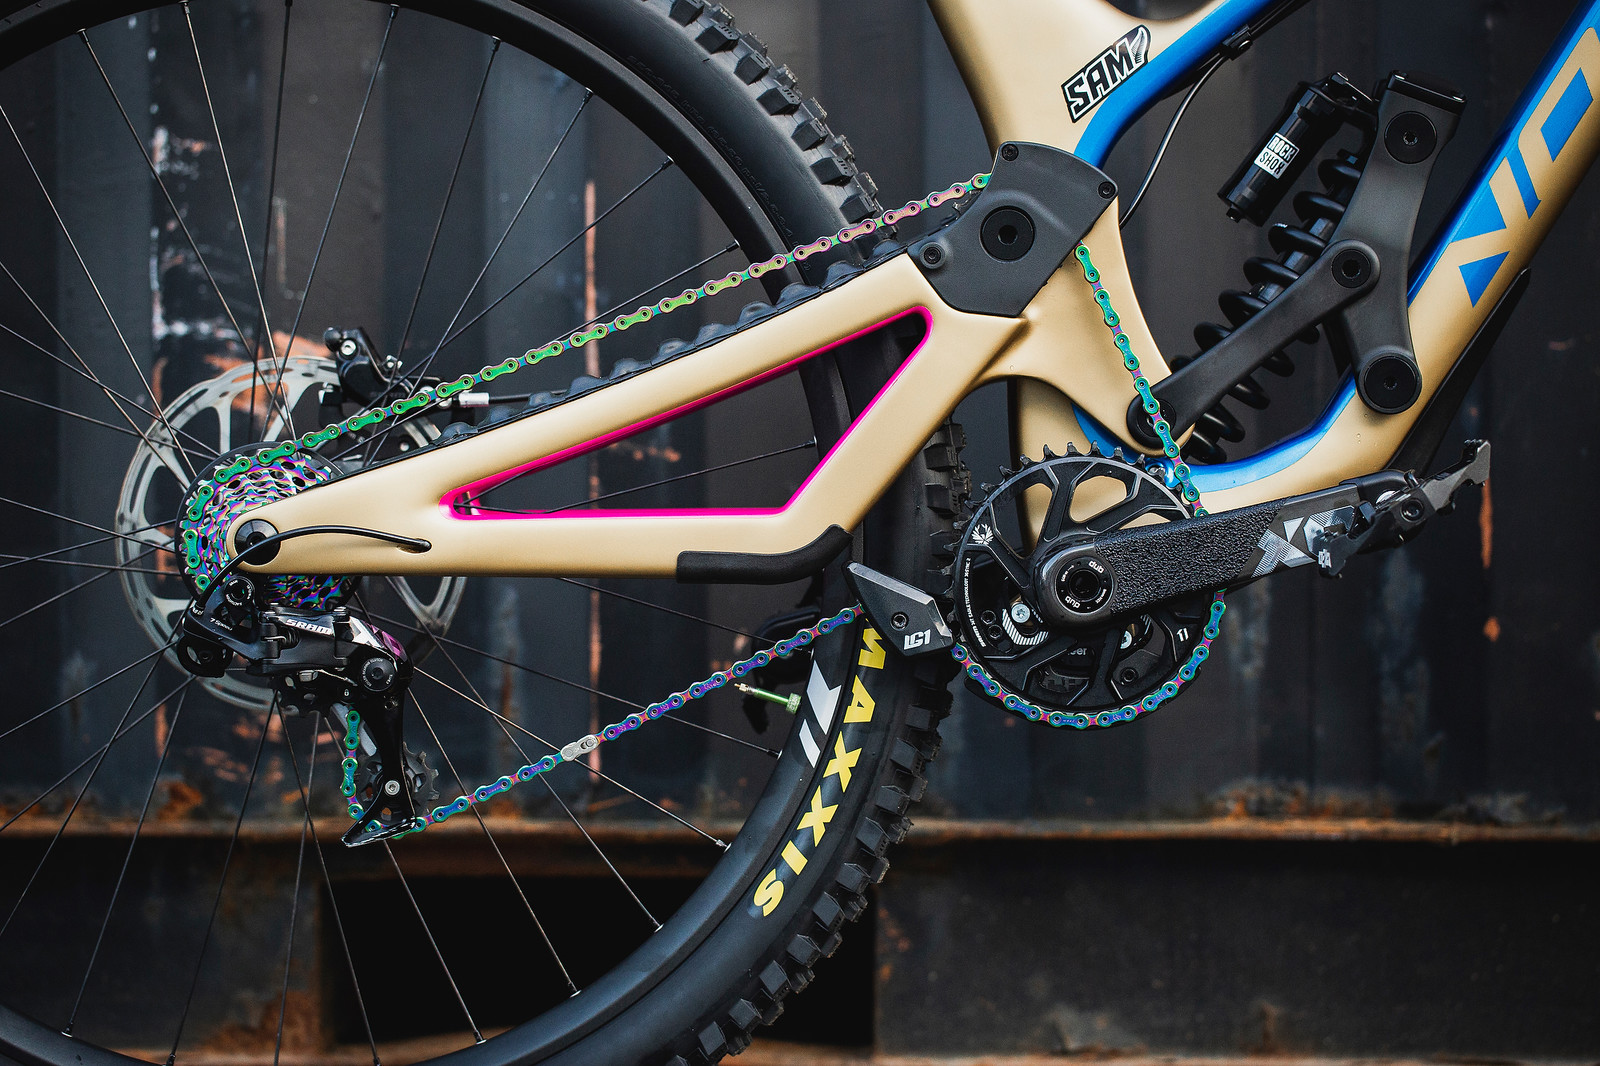 Sam Blenkinsop's Norco Aurum HSP for the 2019 World Championships - 1993 Norco High Single Pivot vs. 2019 Norco HSP - Mountain Biking Pictures - Vital MTB